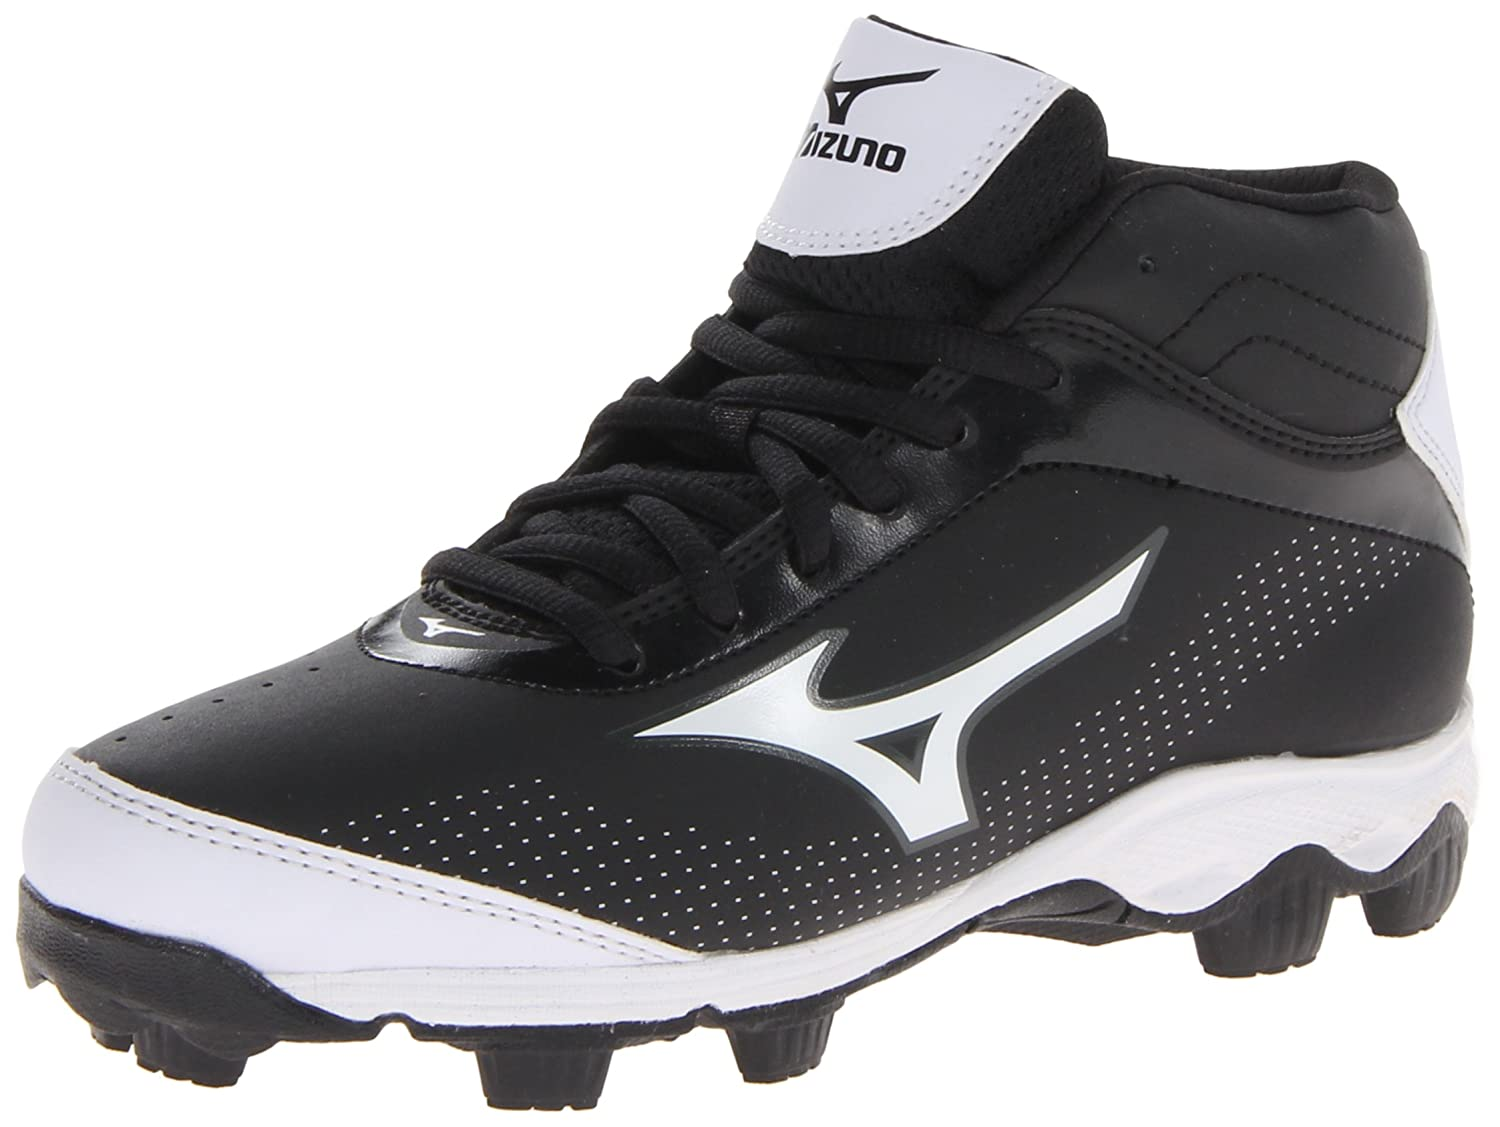 Mizuno Youth Franchise 7 Mid Baseball Cleat (Little Kid/Big Kid) Black/White 1.5 M US Little Kid Youth Franchise 7 Mid - K